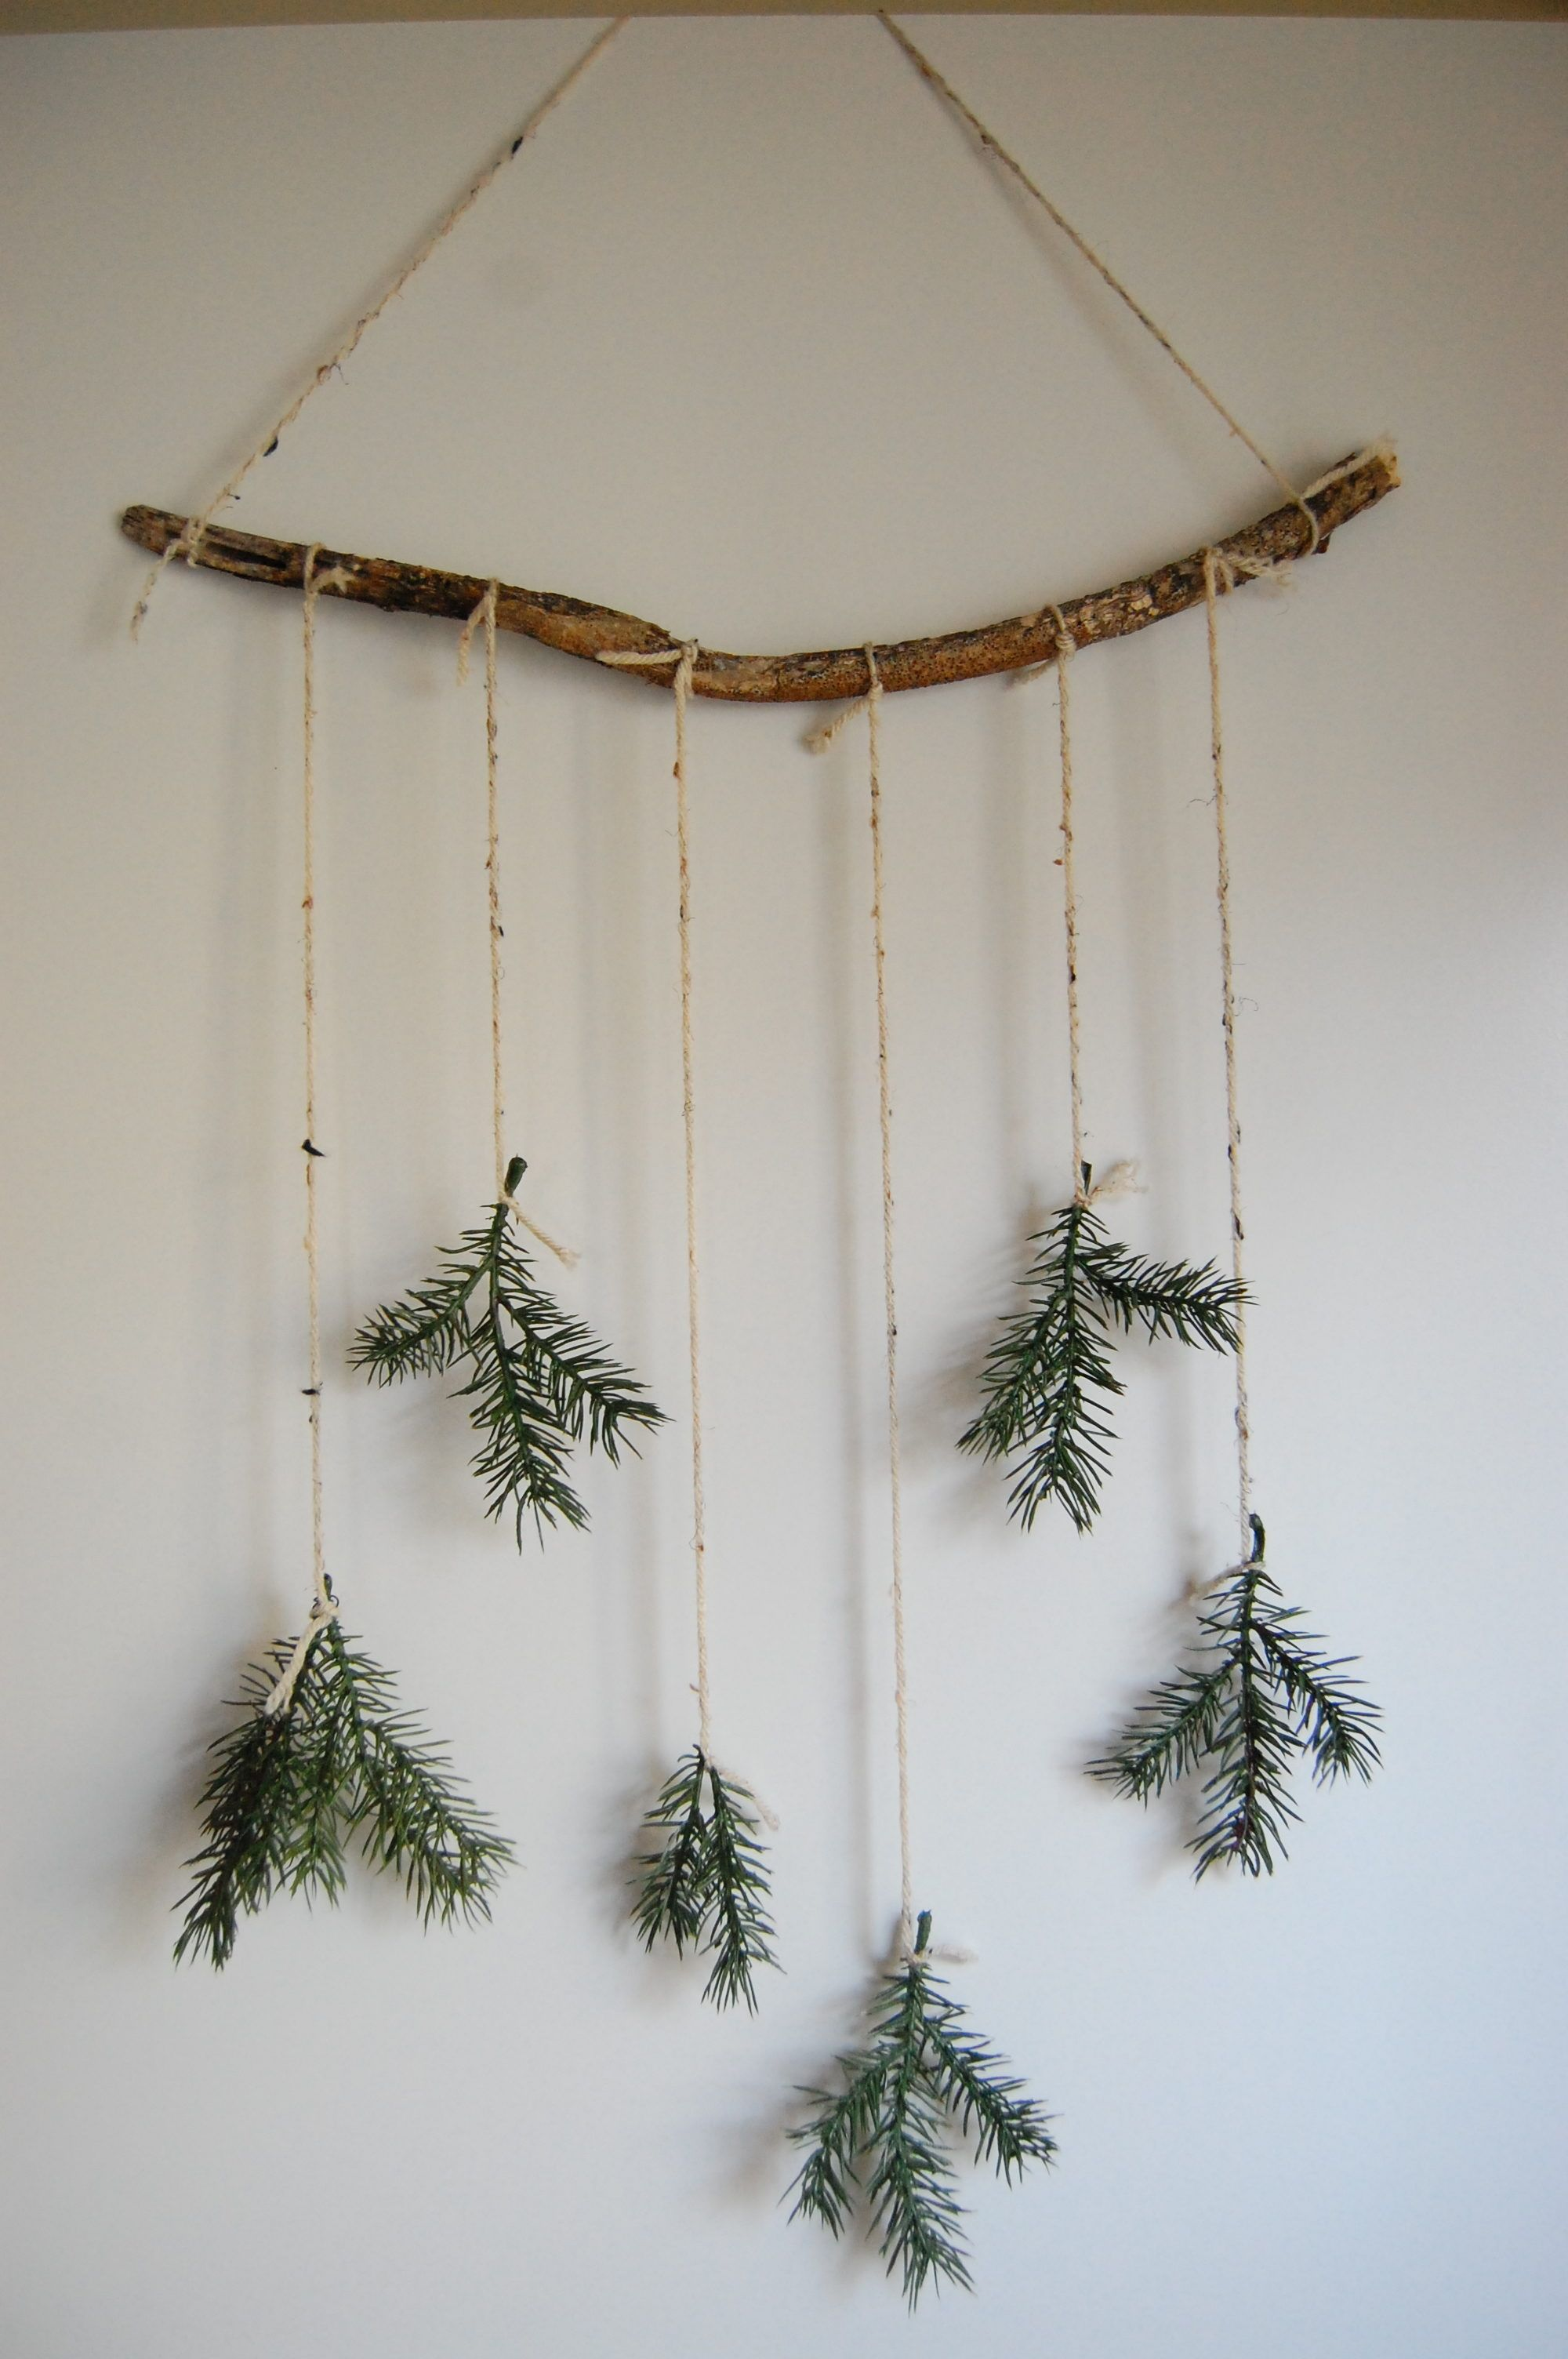 diy minimal christmas decor #christmasdecor